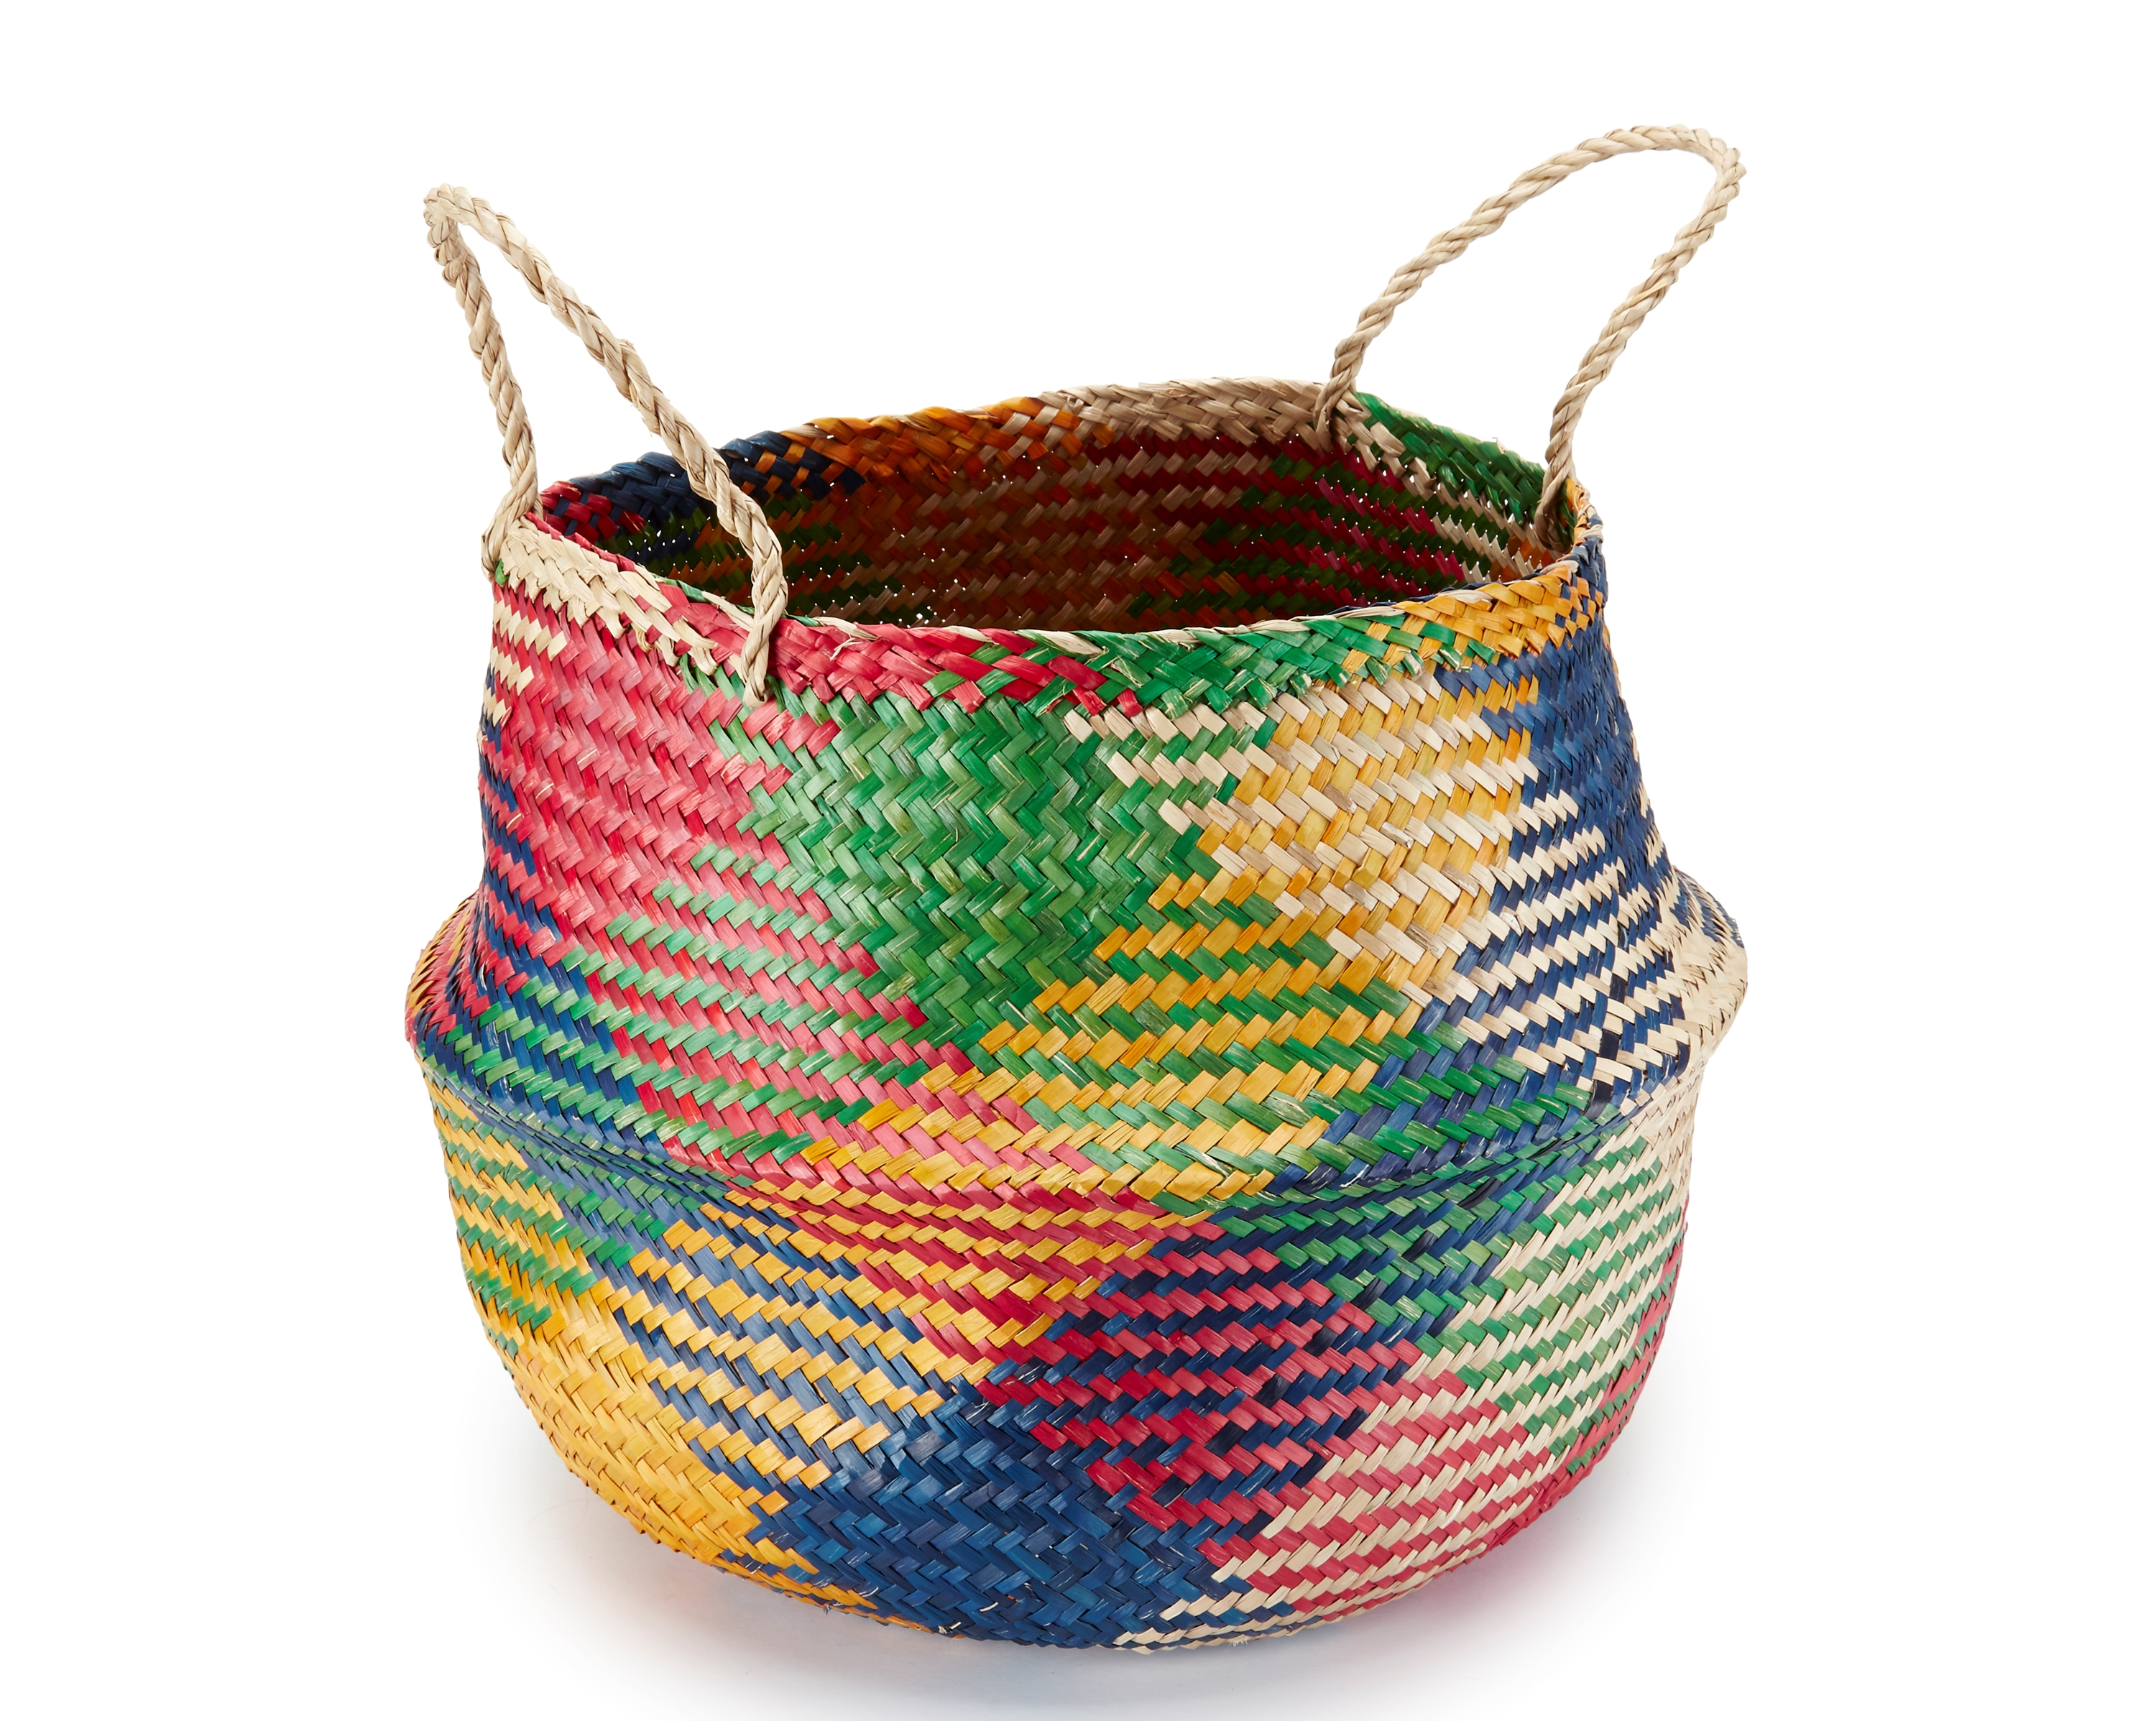 Handwoven Seagrass Basket, £19.99 from Oxfam